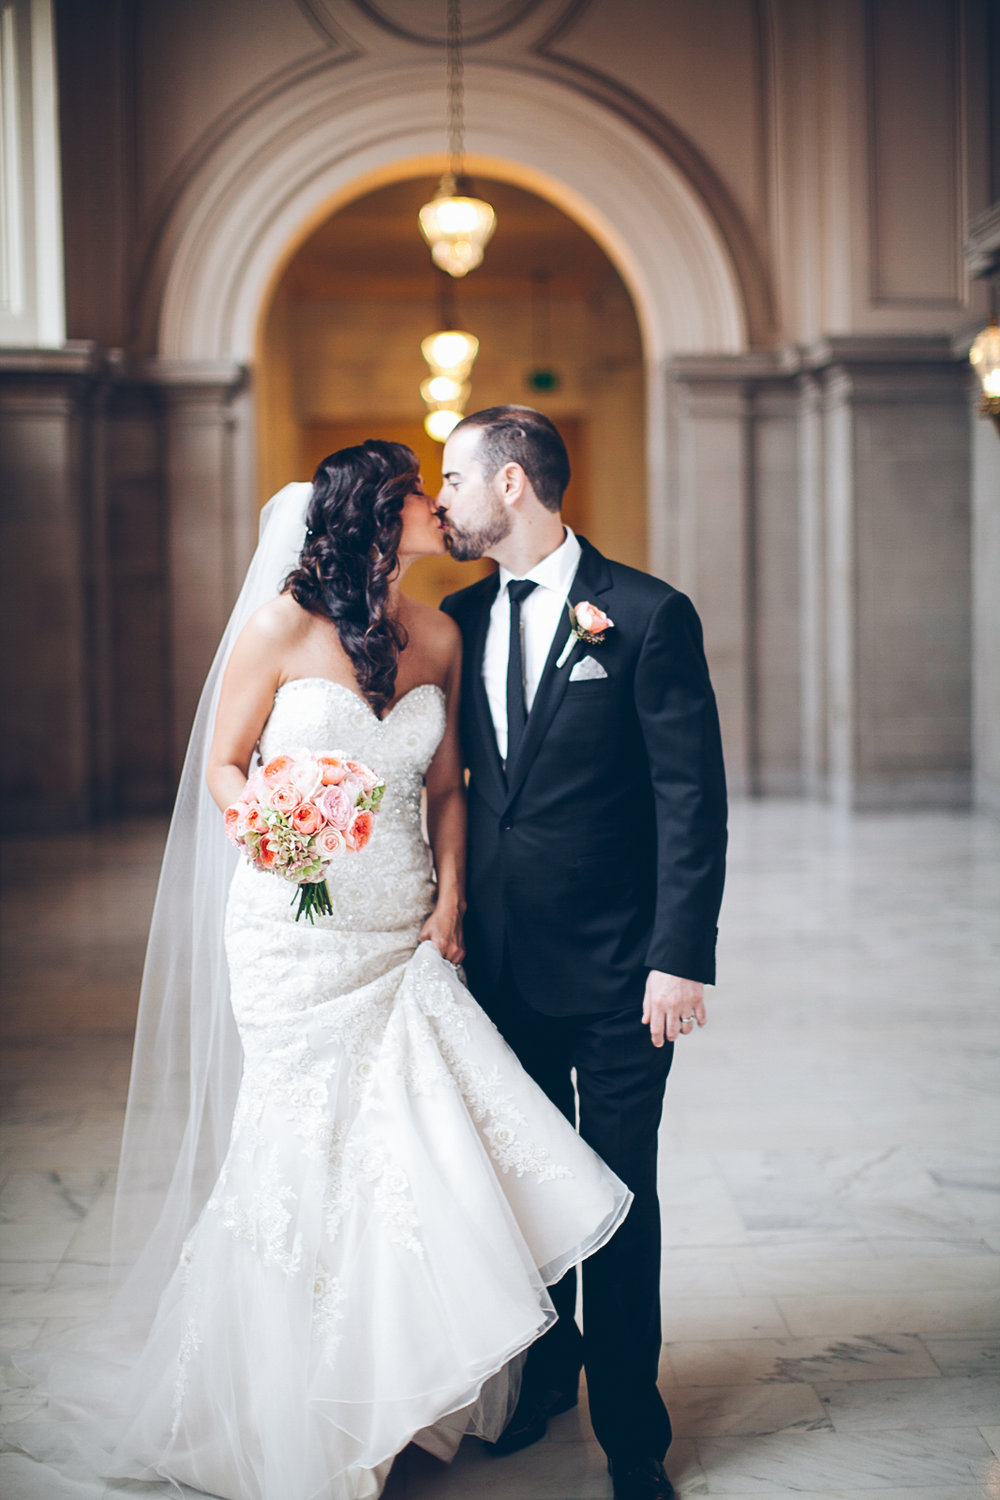 San_francisco_city_hall_wedding_photography_meegan_travis_ebony_siovhan_bokeh_photography_37.jpg